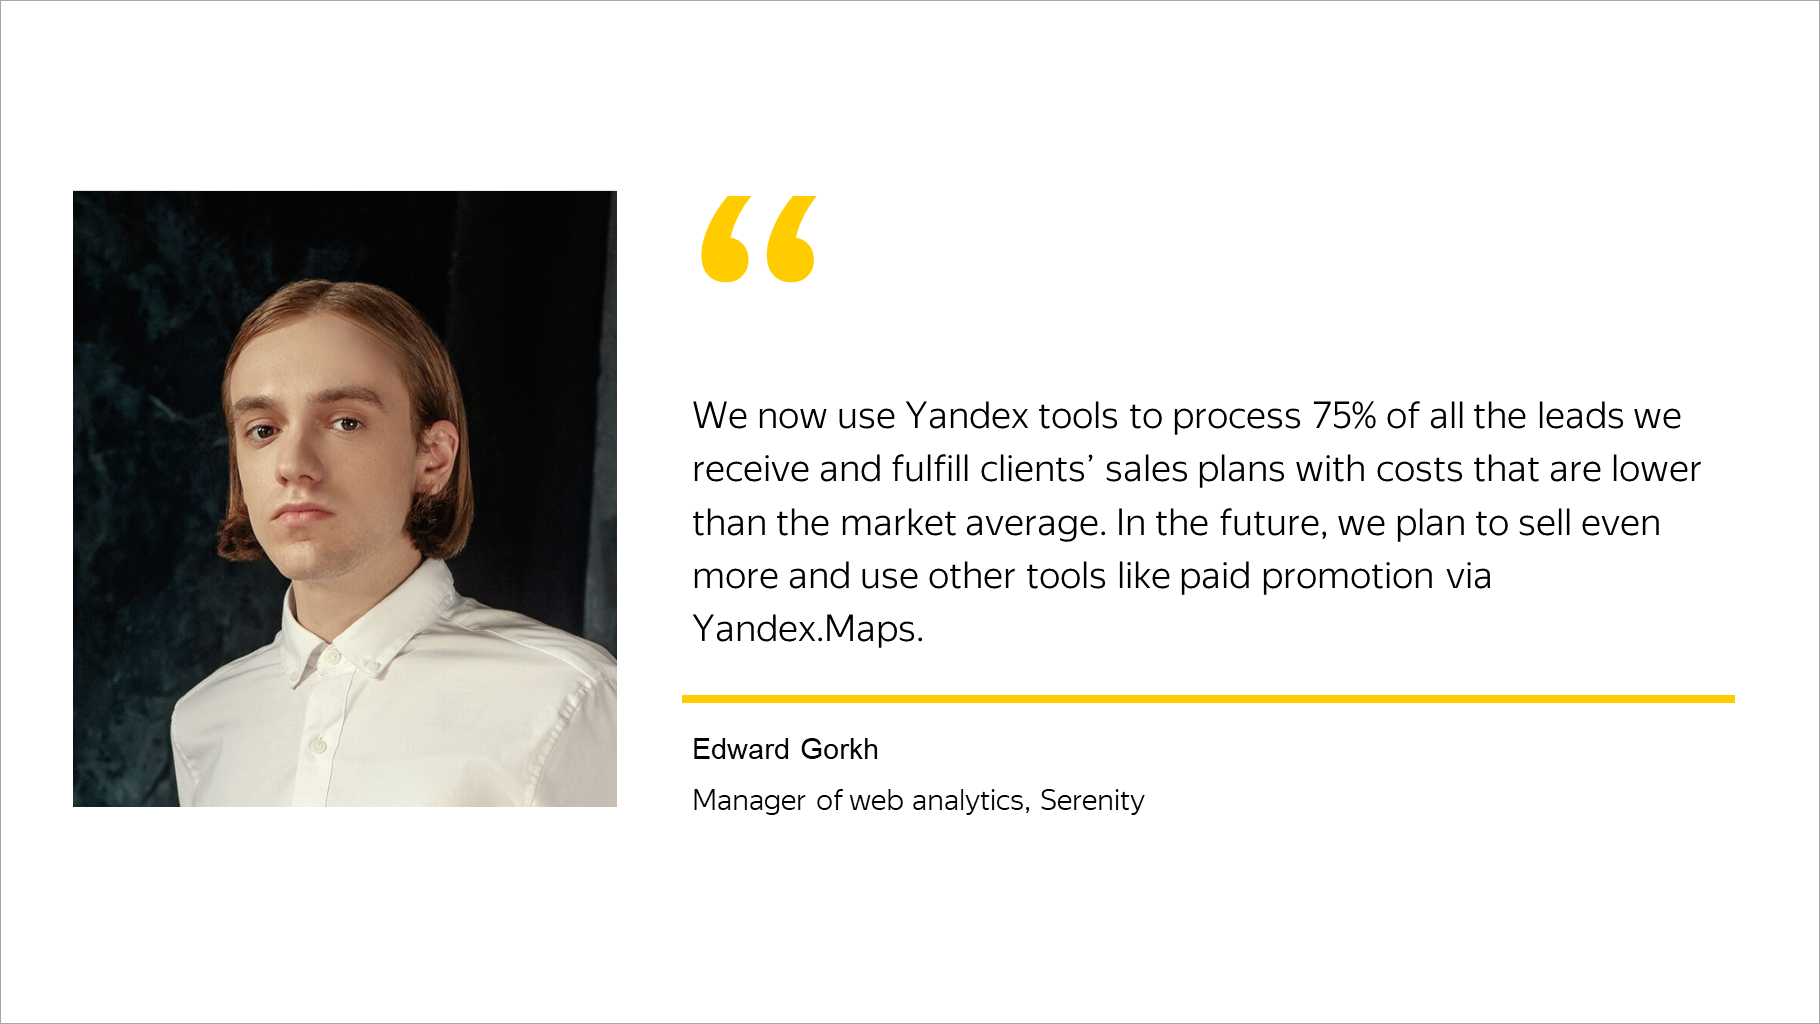 We now use Yandex tools to process 75% of all the leads we receive and fulfill clients' sales plans with costs that are lower than the market average.